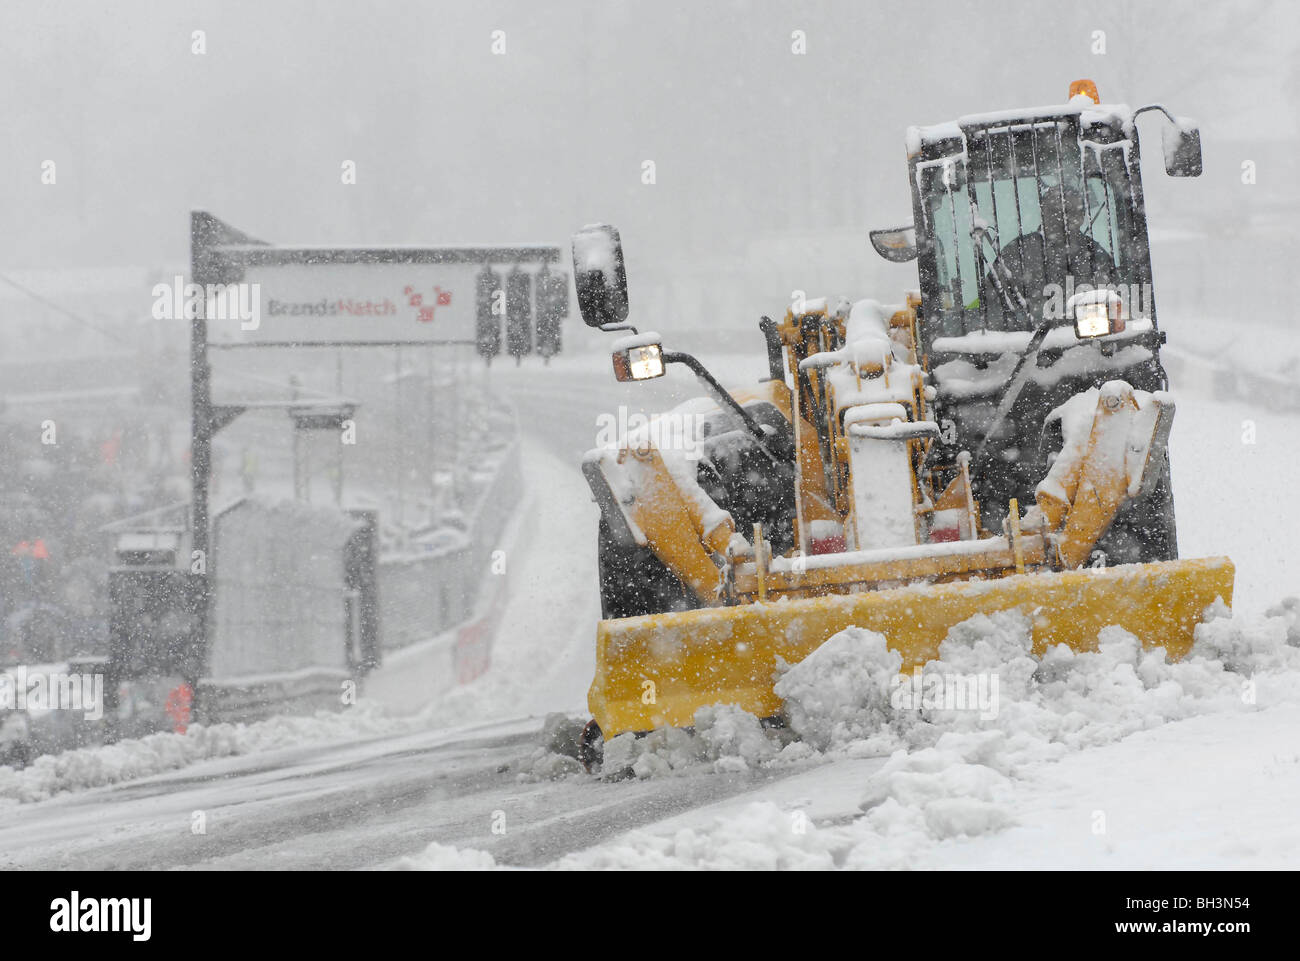 A snow plough clears the track at Brands Hatch before the first round of the new British Superbike season, 6th April - Stock Image